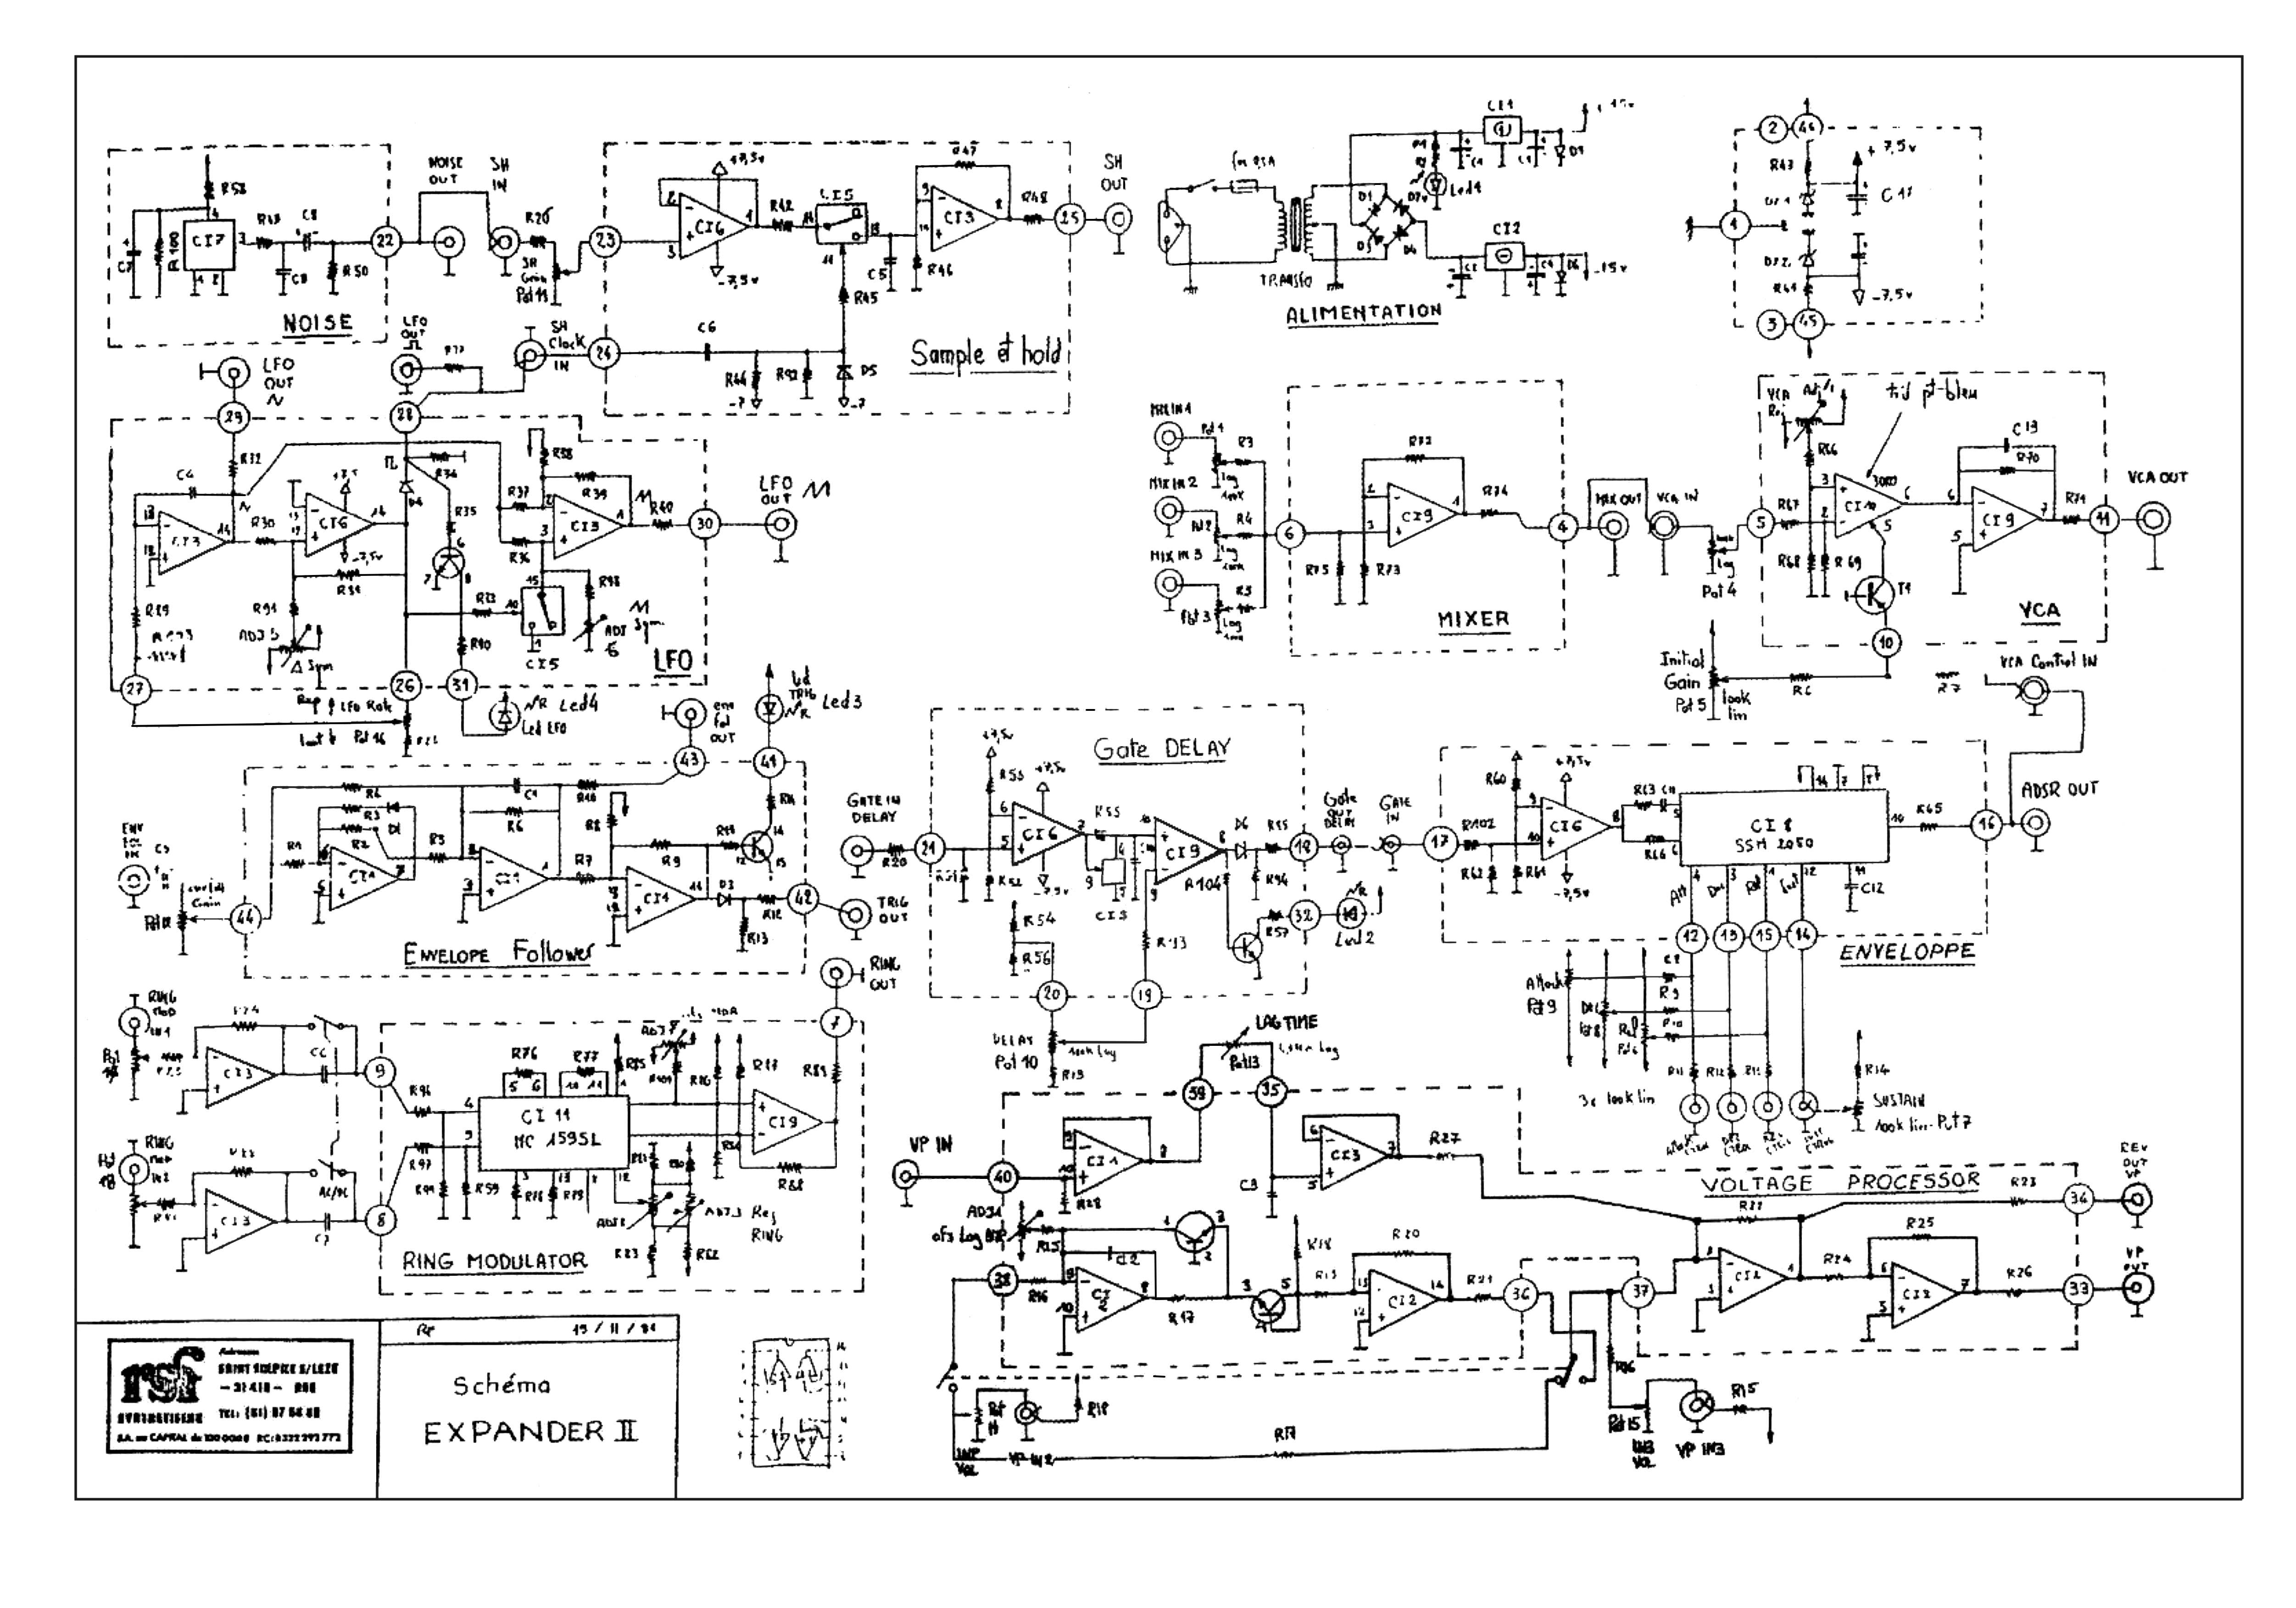 synthesizer service manuals free download rh synfo nl Simple Wiring Diagrams Simple Wiring Diagrams